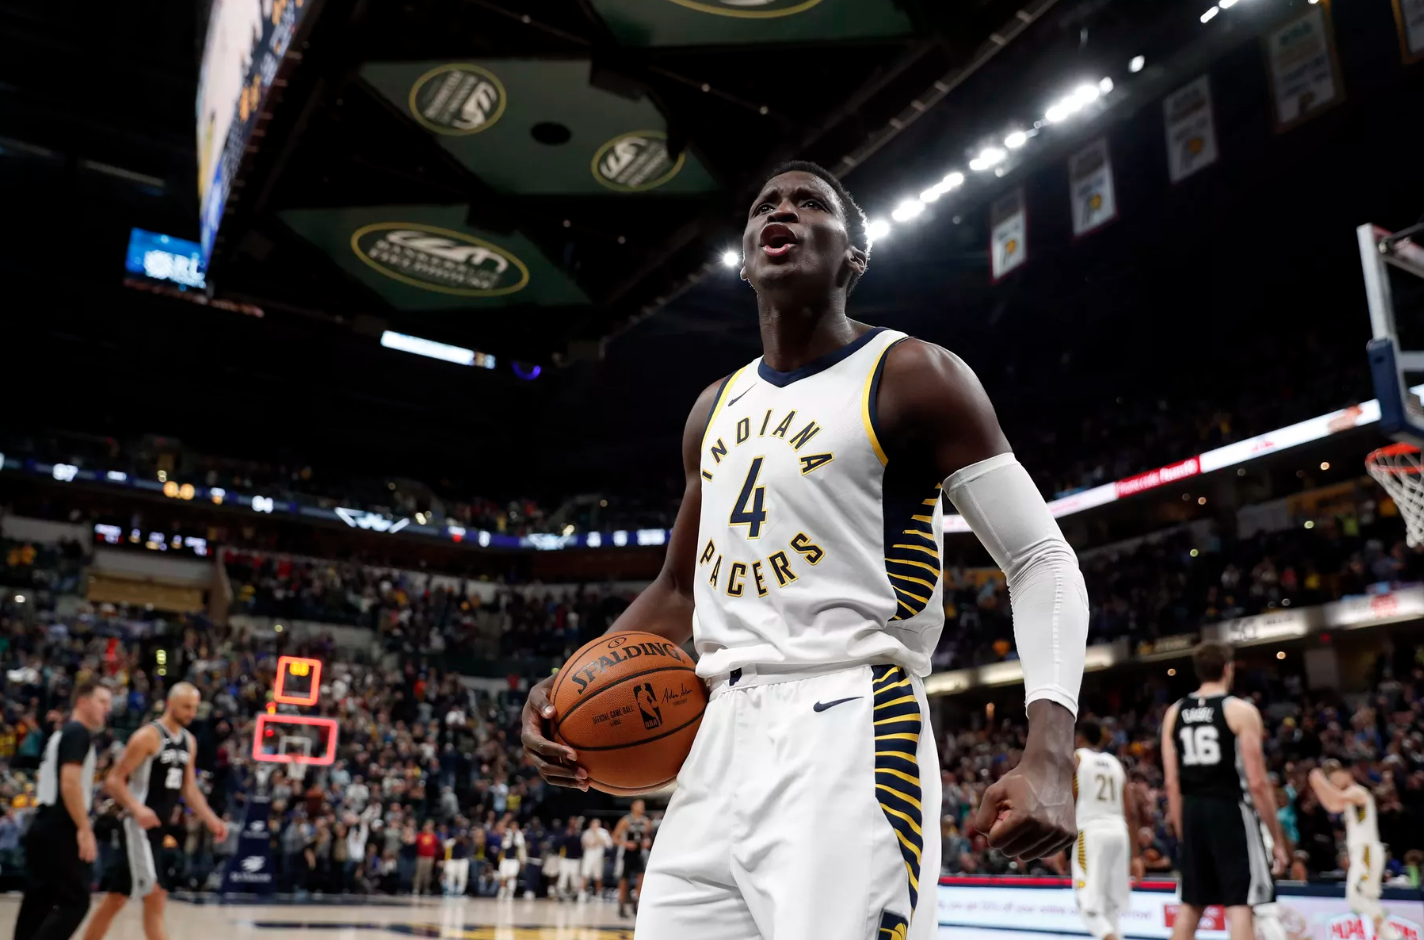 Victor Oladipo is the NBA's Most Improved Player this season